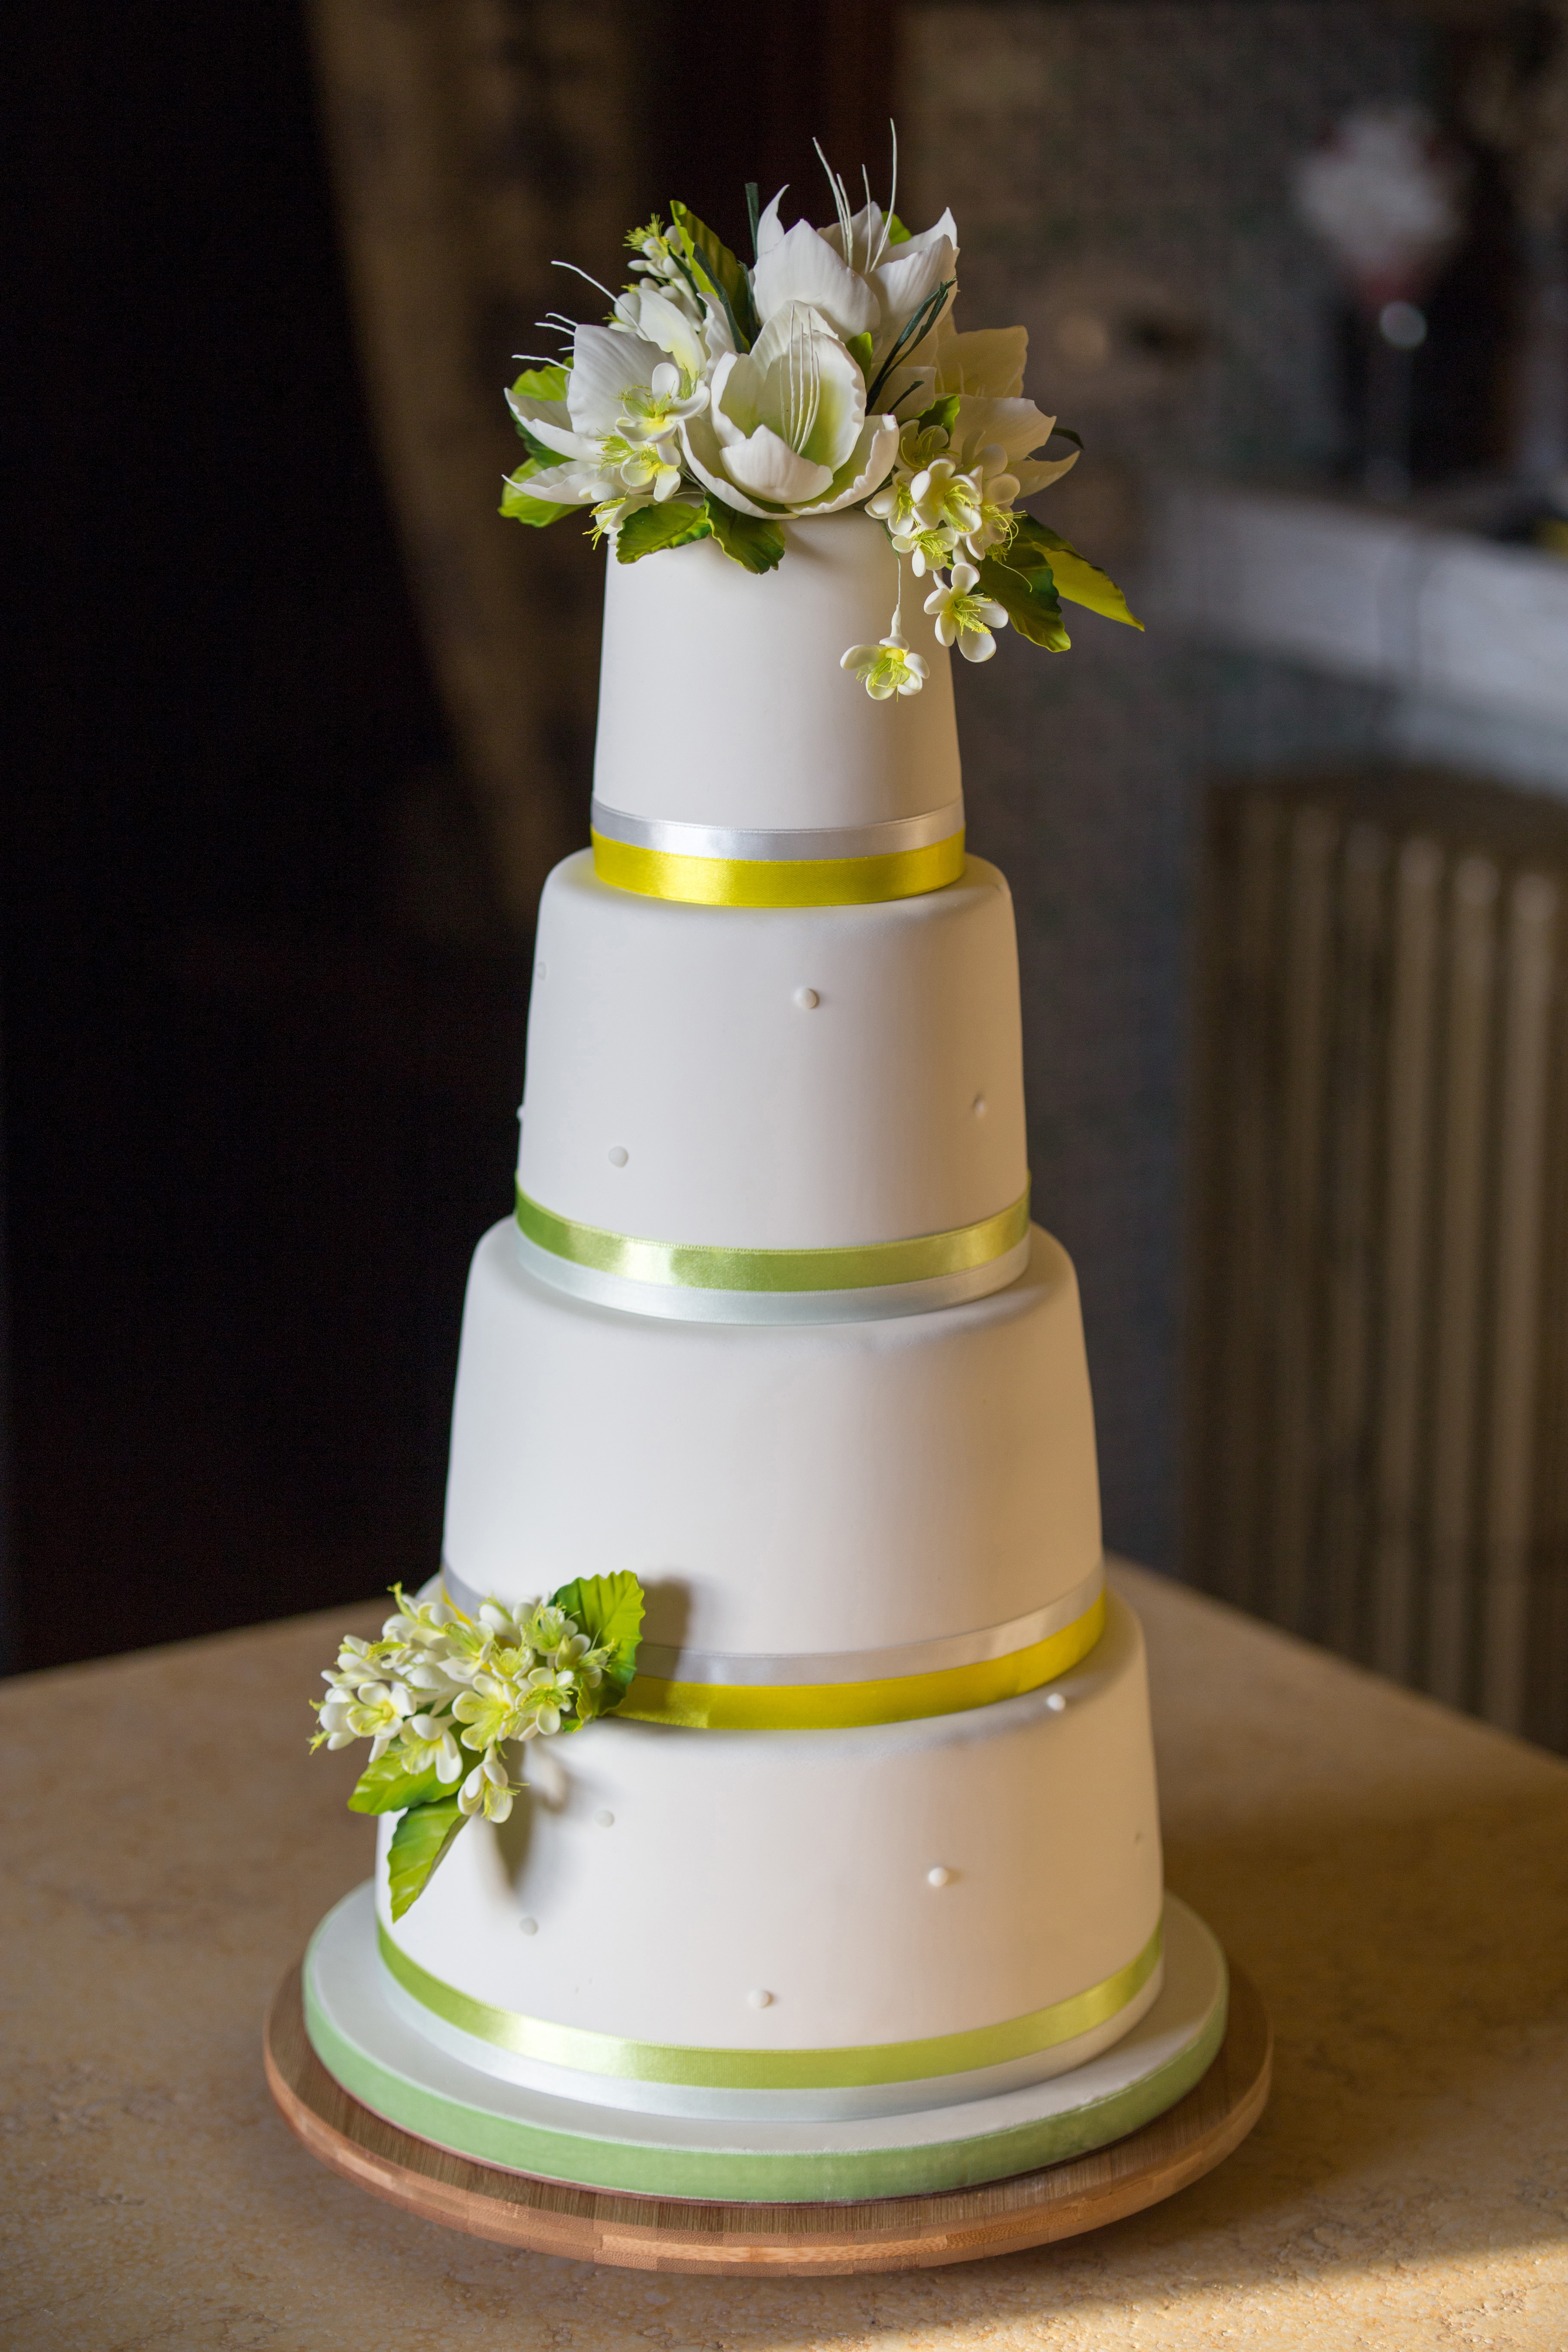 White with yellow sugar flowers wedding